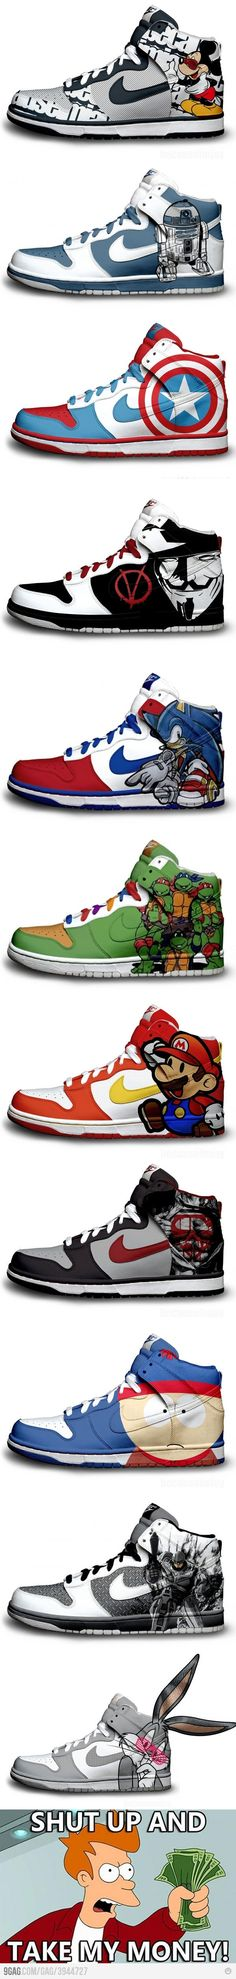 Awesome Nike Sneakers